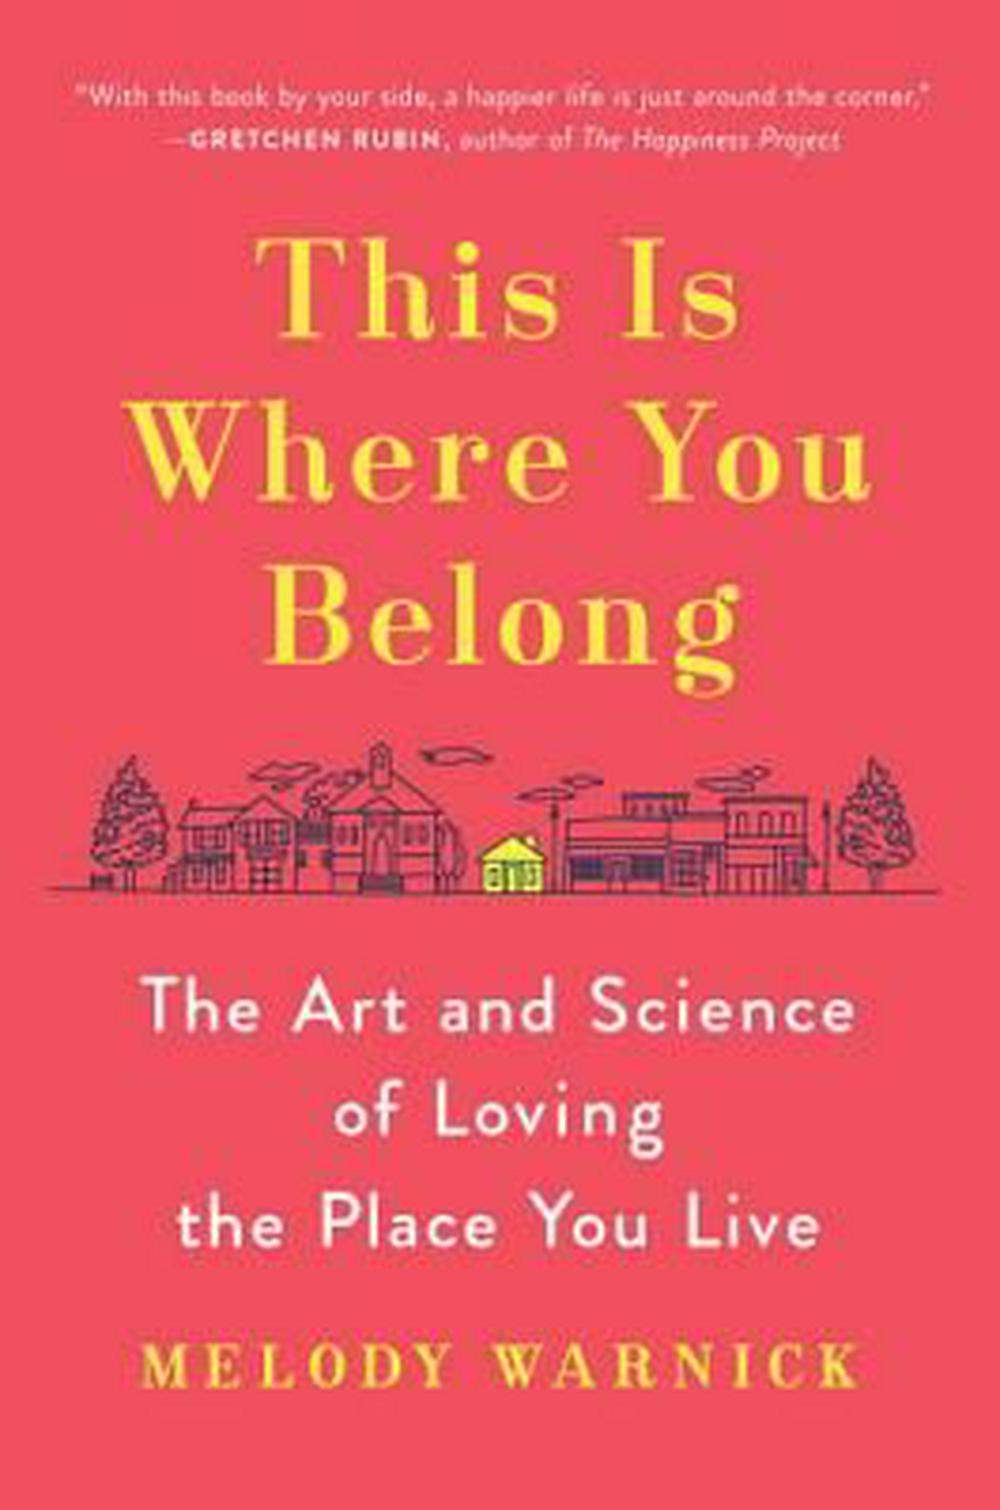 This Is Where You Belong by Melody Warnick, ISBN: 9780525429128